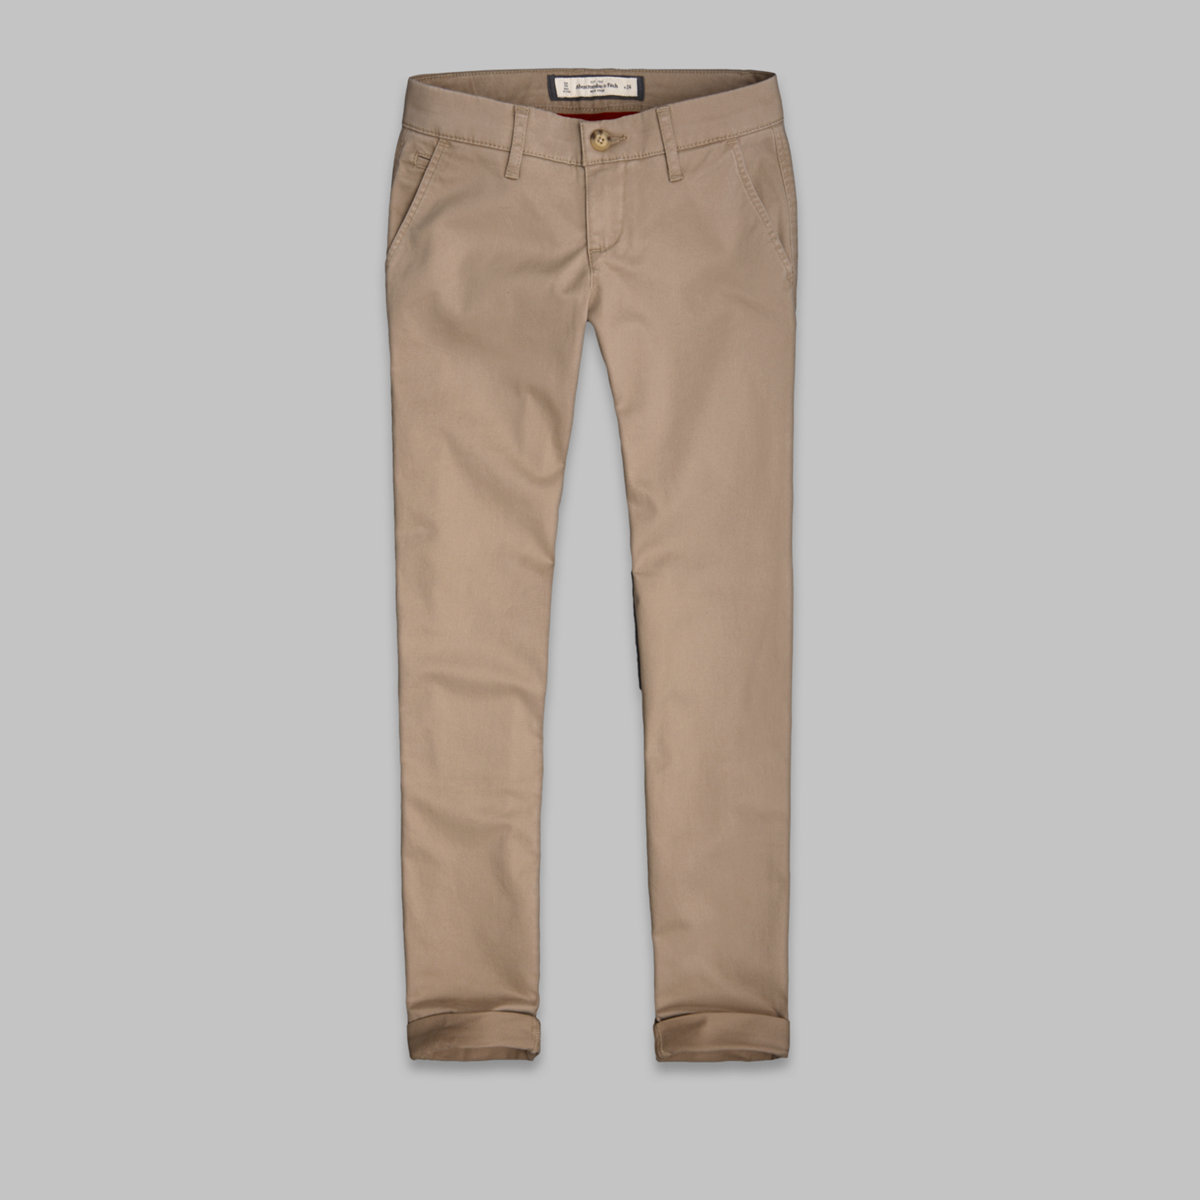 A&F Chinos